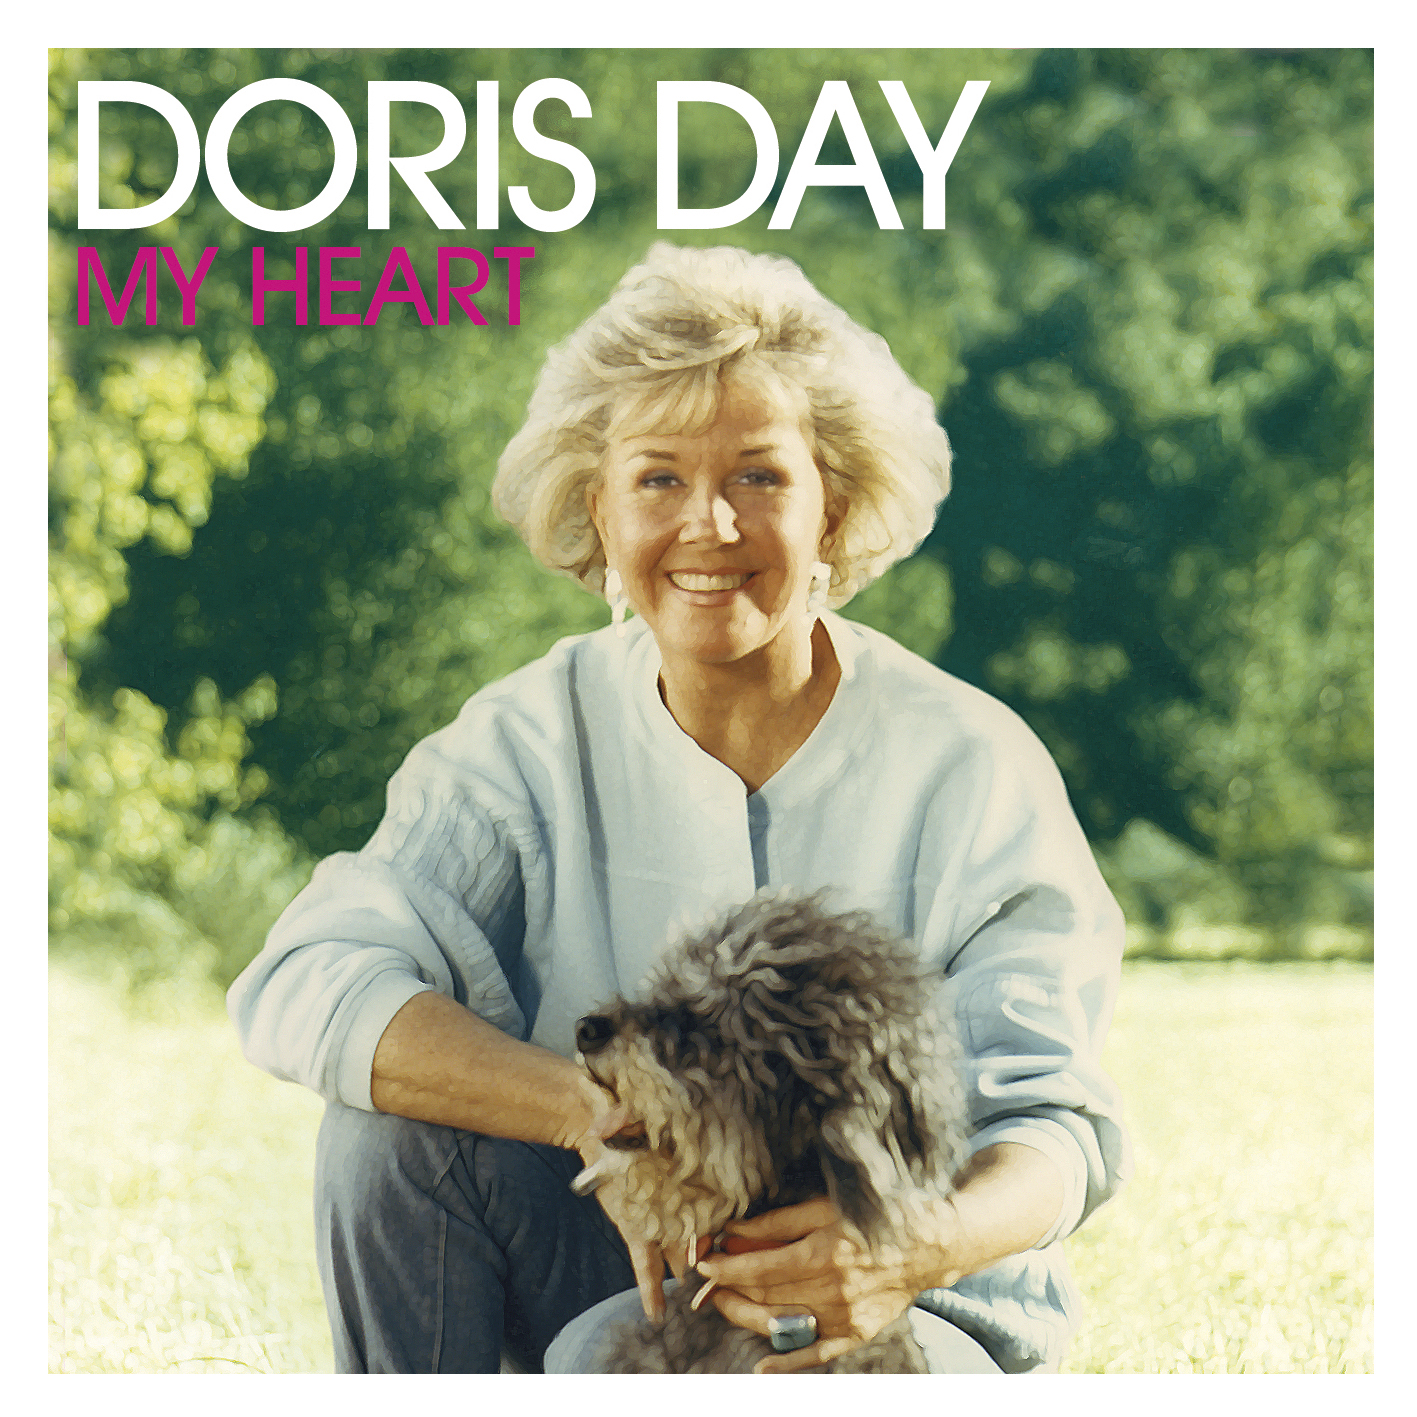 My heart the album by doris day fbf for The look at home